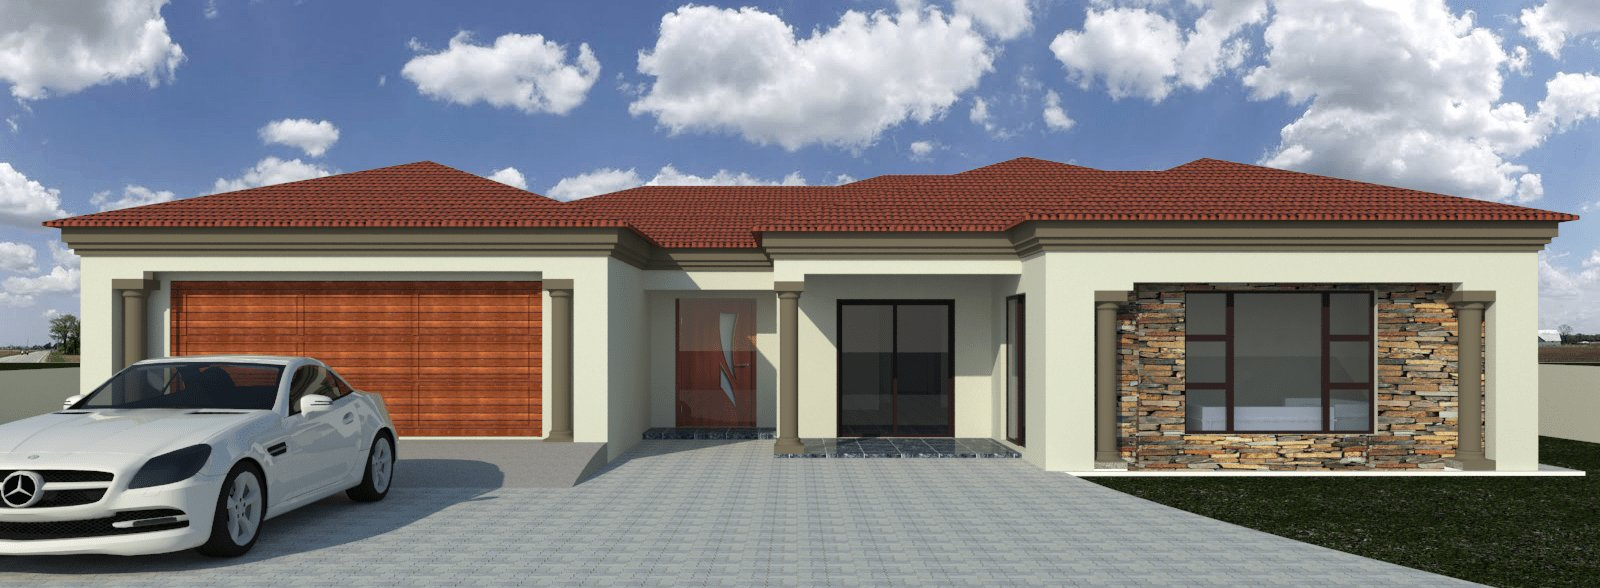 Best House Plans South Africa Most Affordable Way Build Simple With Pictures